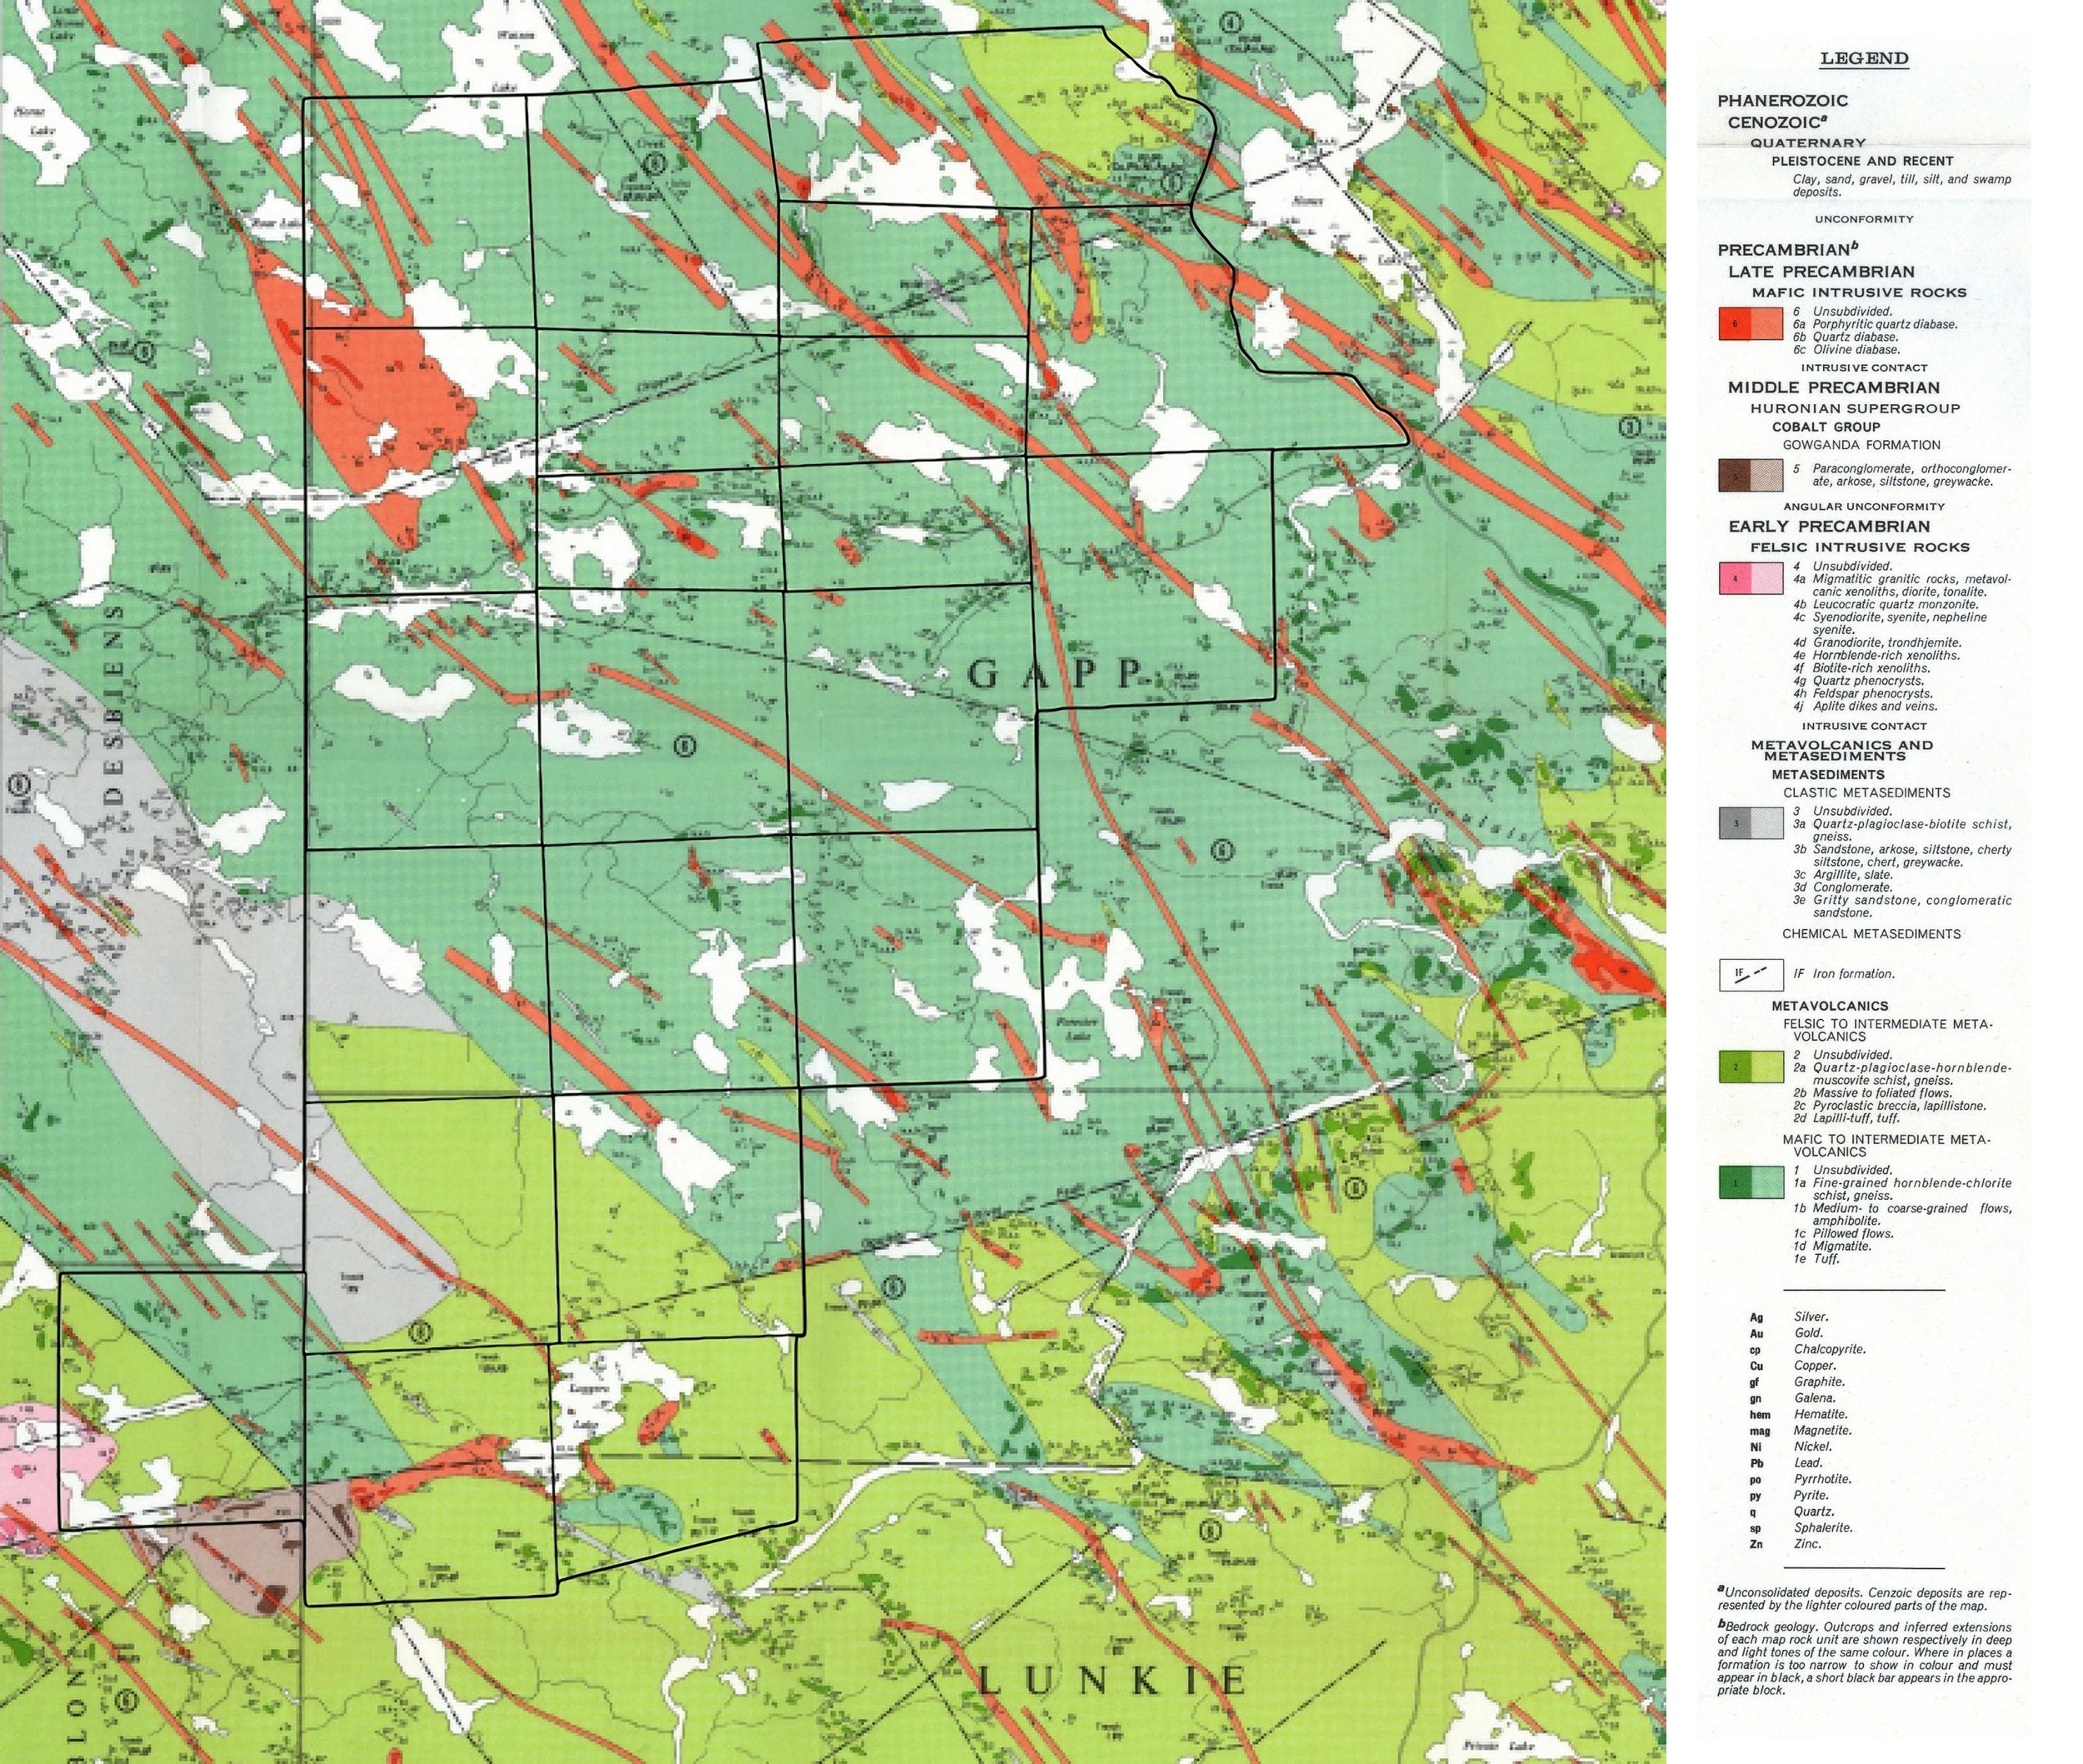 Figure 1. Batchewana property claim group (outlined in black) with regional geology.